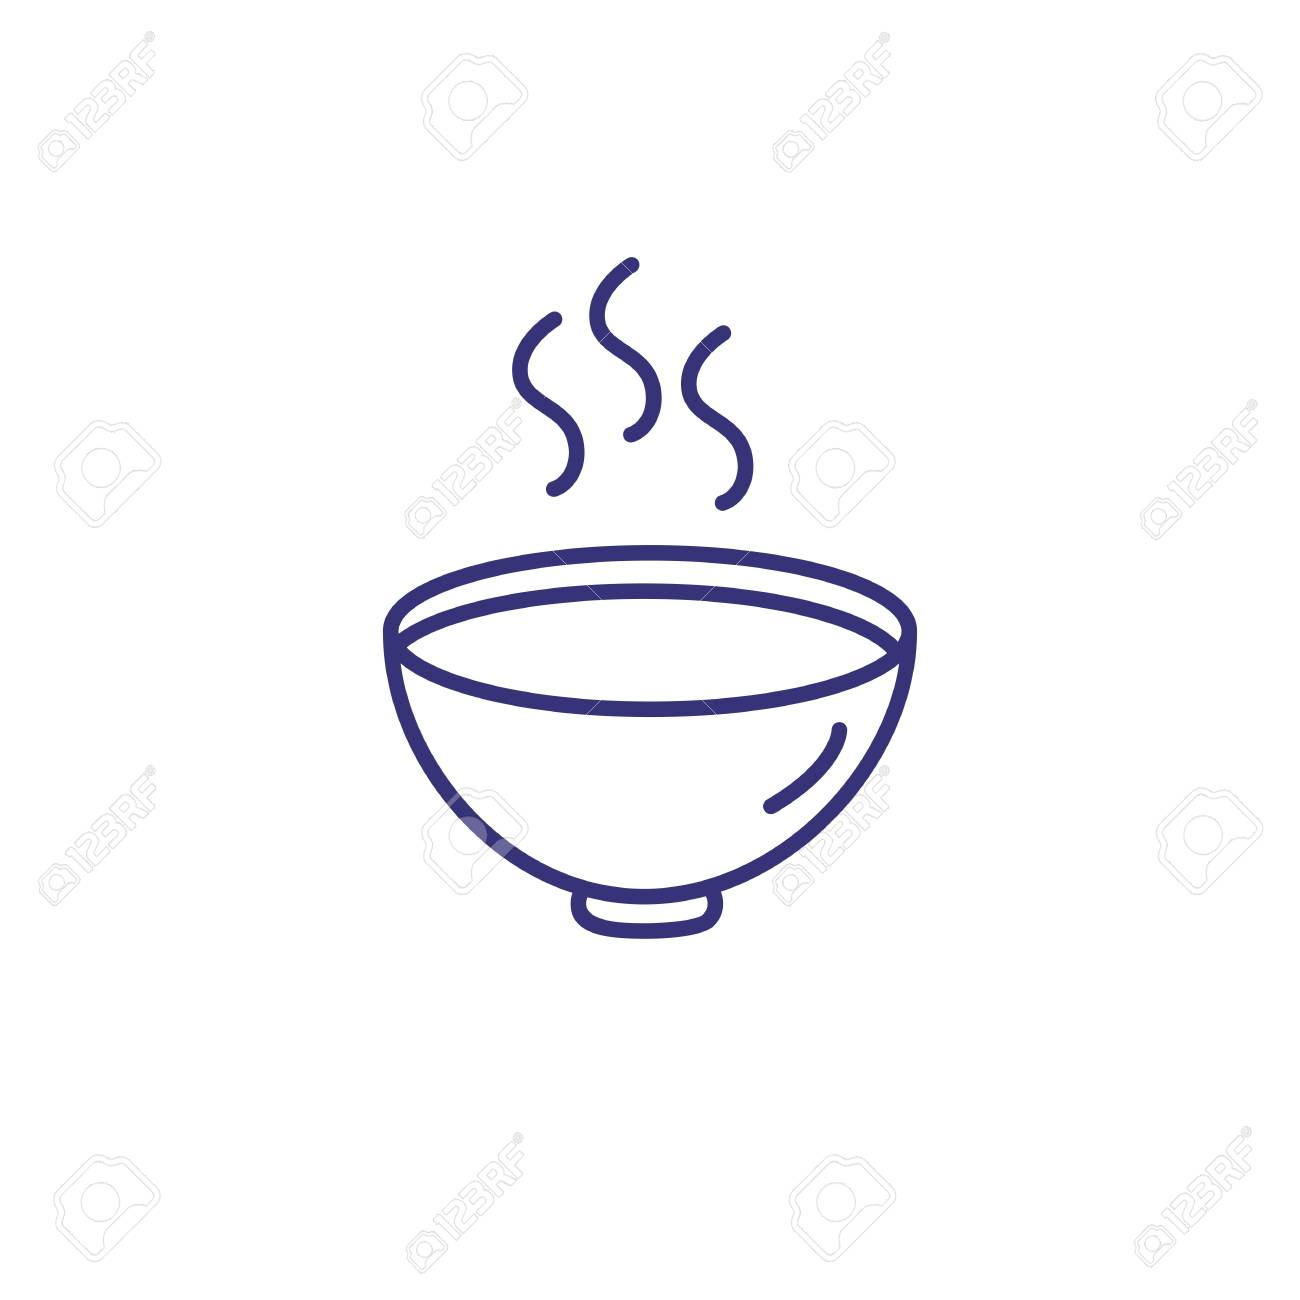 Hot soup line icon. Cream soup, recipe, steam. Eating concept. Vector illustration can be used for topics like lunch, dinner, gourmet - 112192013